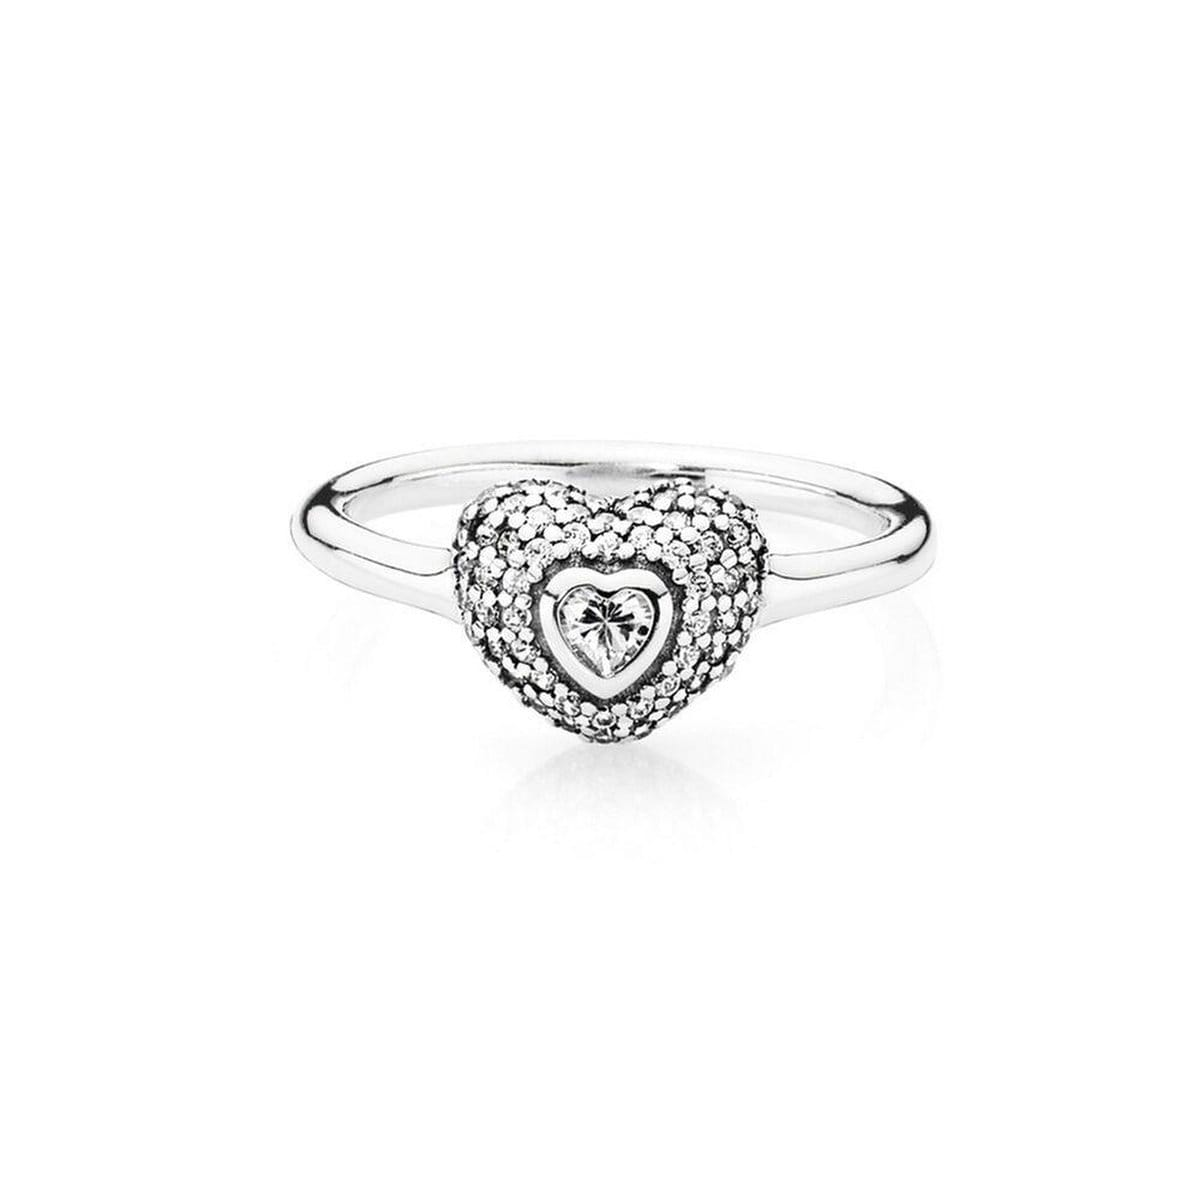 In My Heart Clear Cubic Zirconia Ring - 190877CZ-Pandora-Renee Taylor Gallery